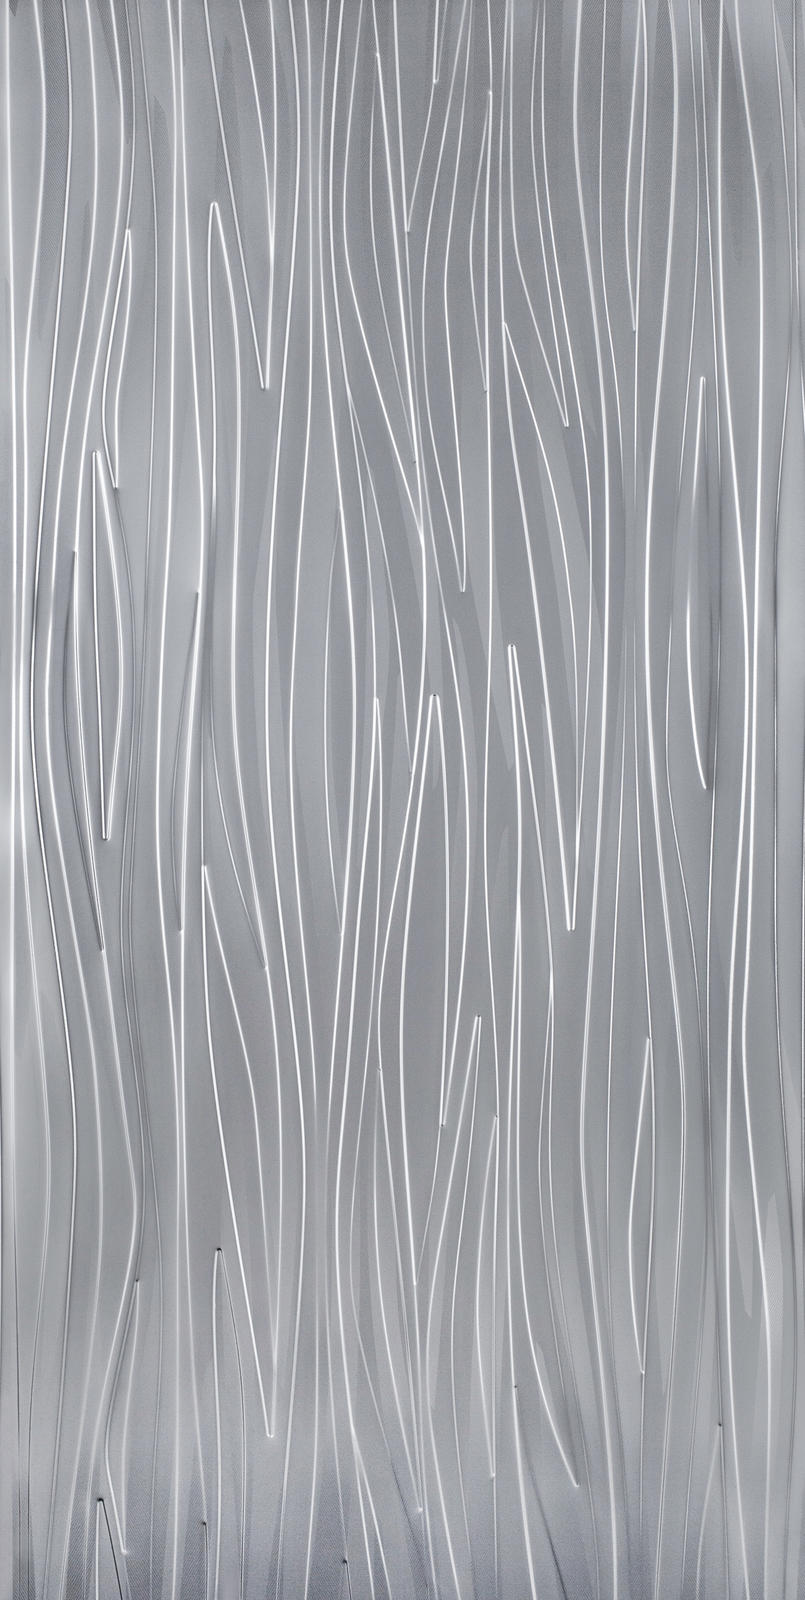 Stainless Steel Fusion Patterns | Architectural | Forms ... Steel